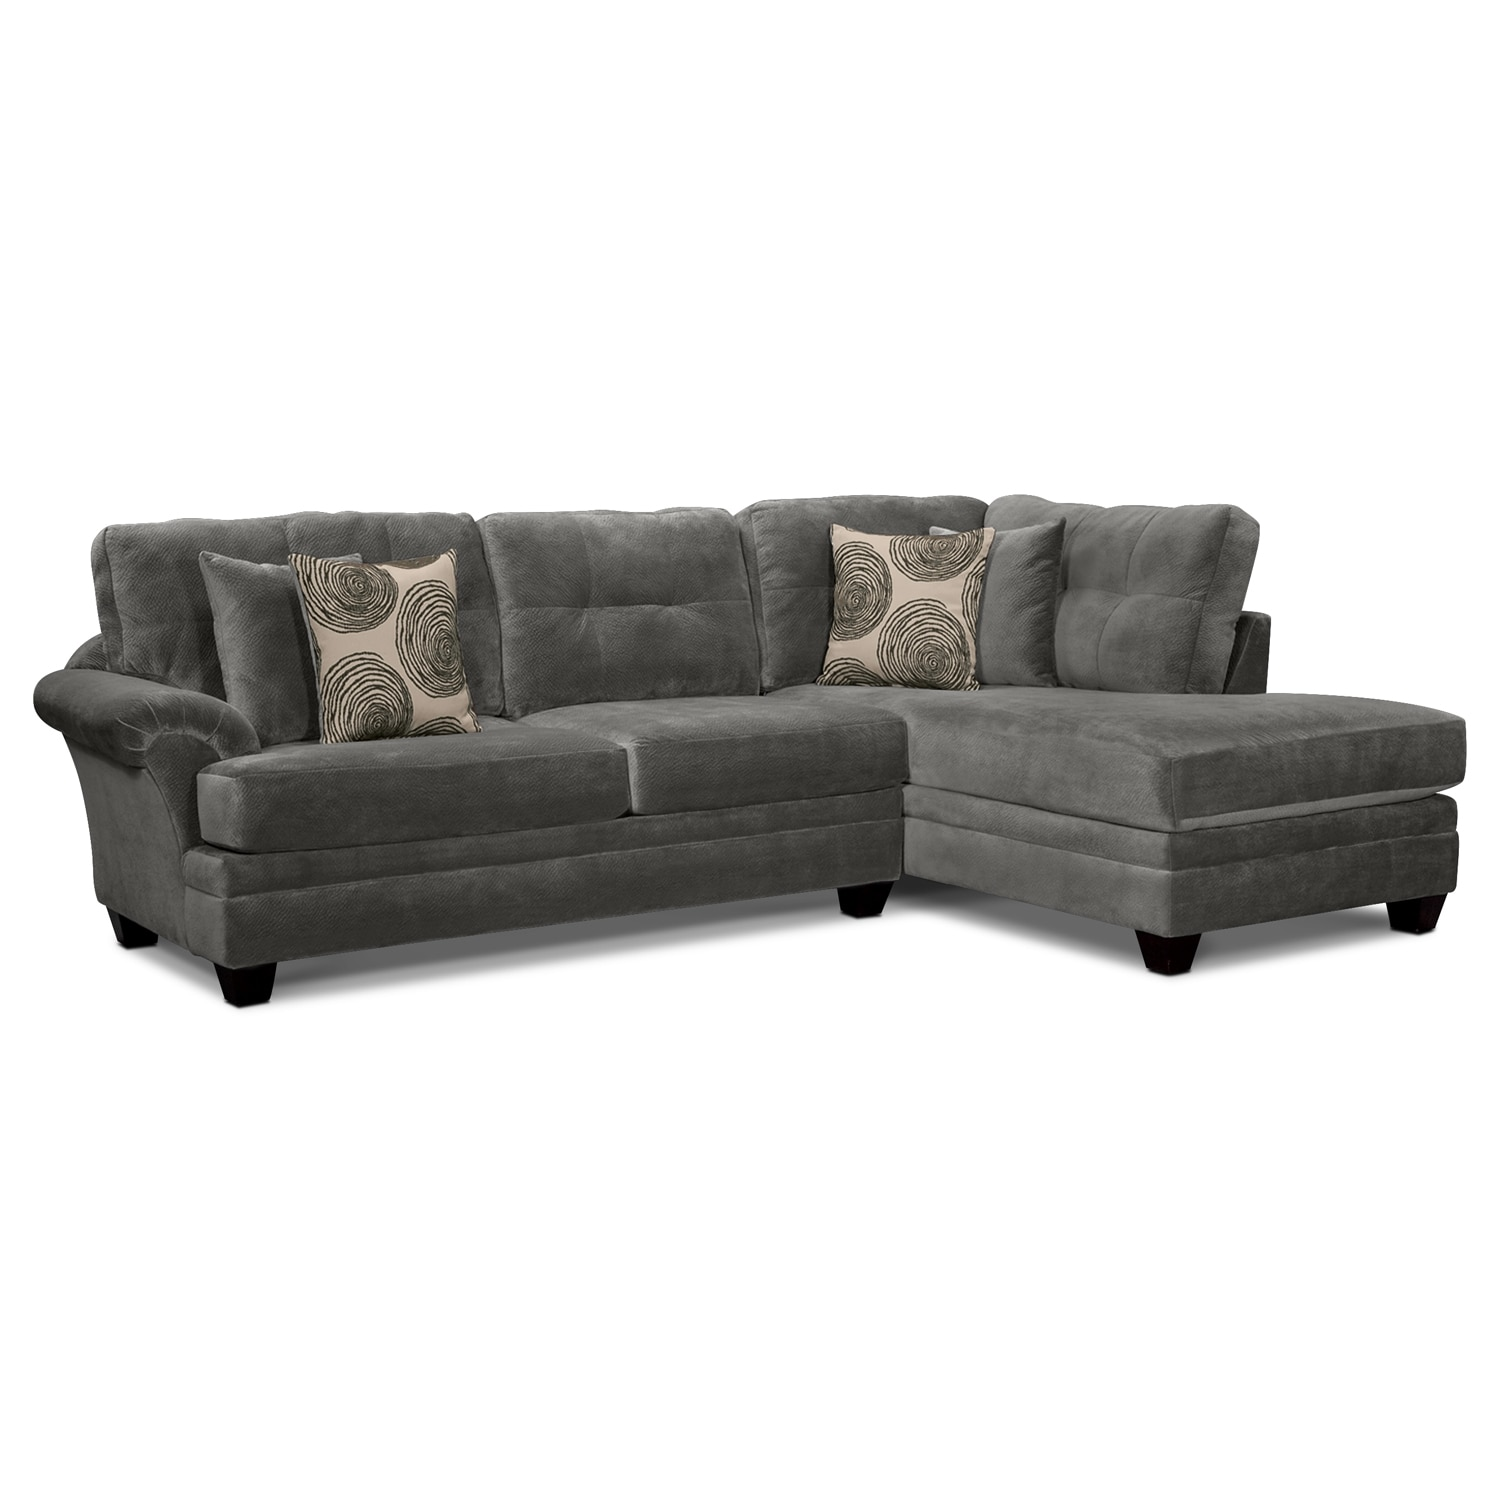 Living Room Furniture   Cordelle 2 Piece Right Facing Chaise Sectional    Gray